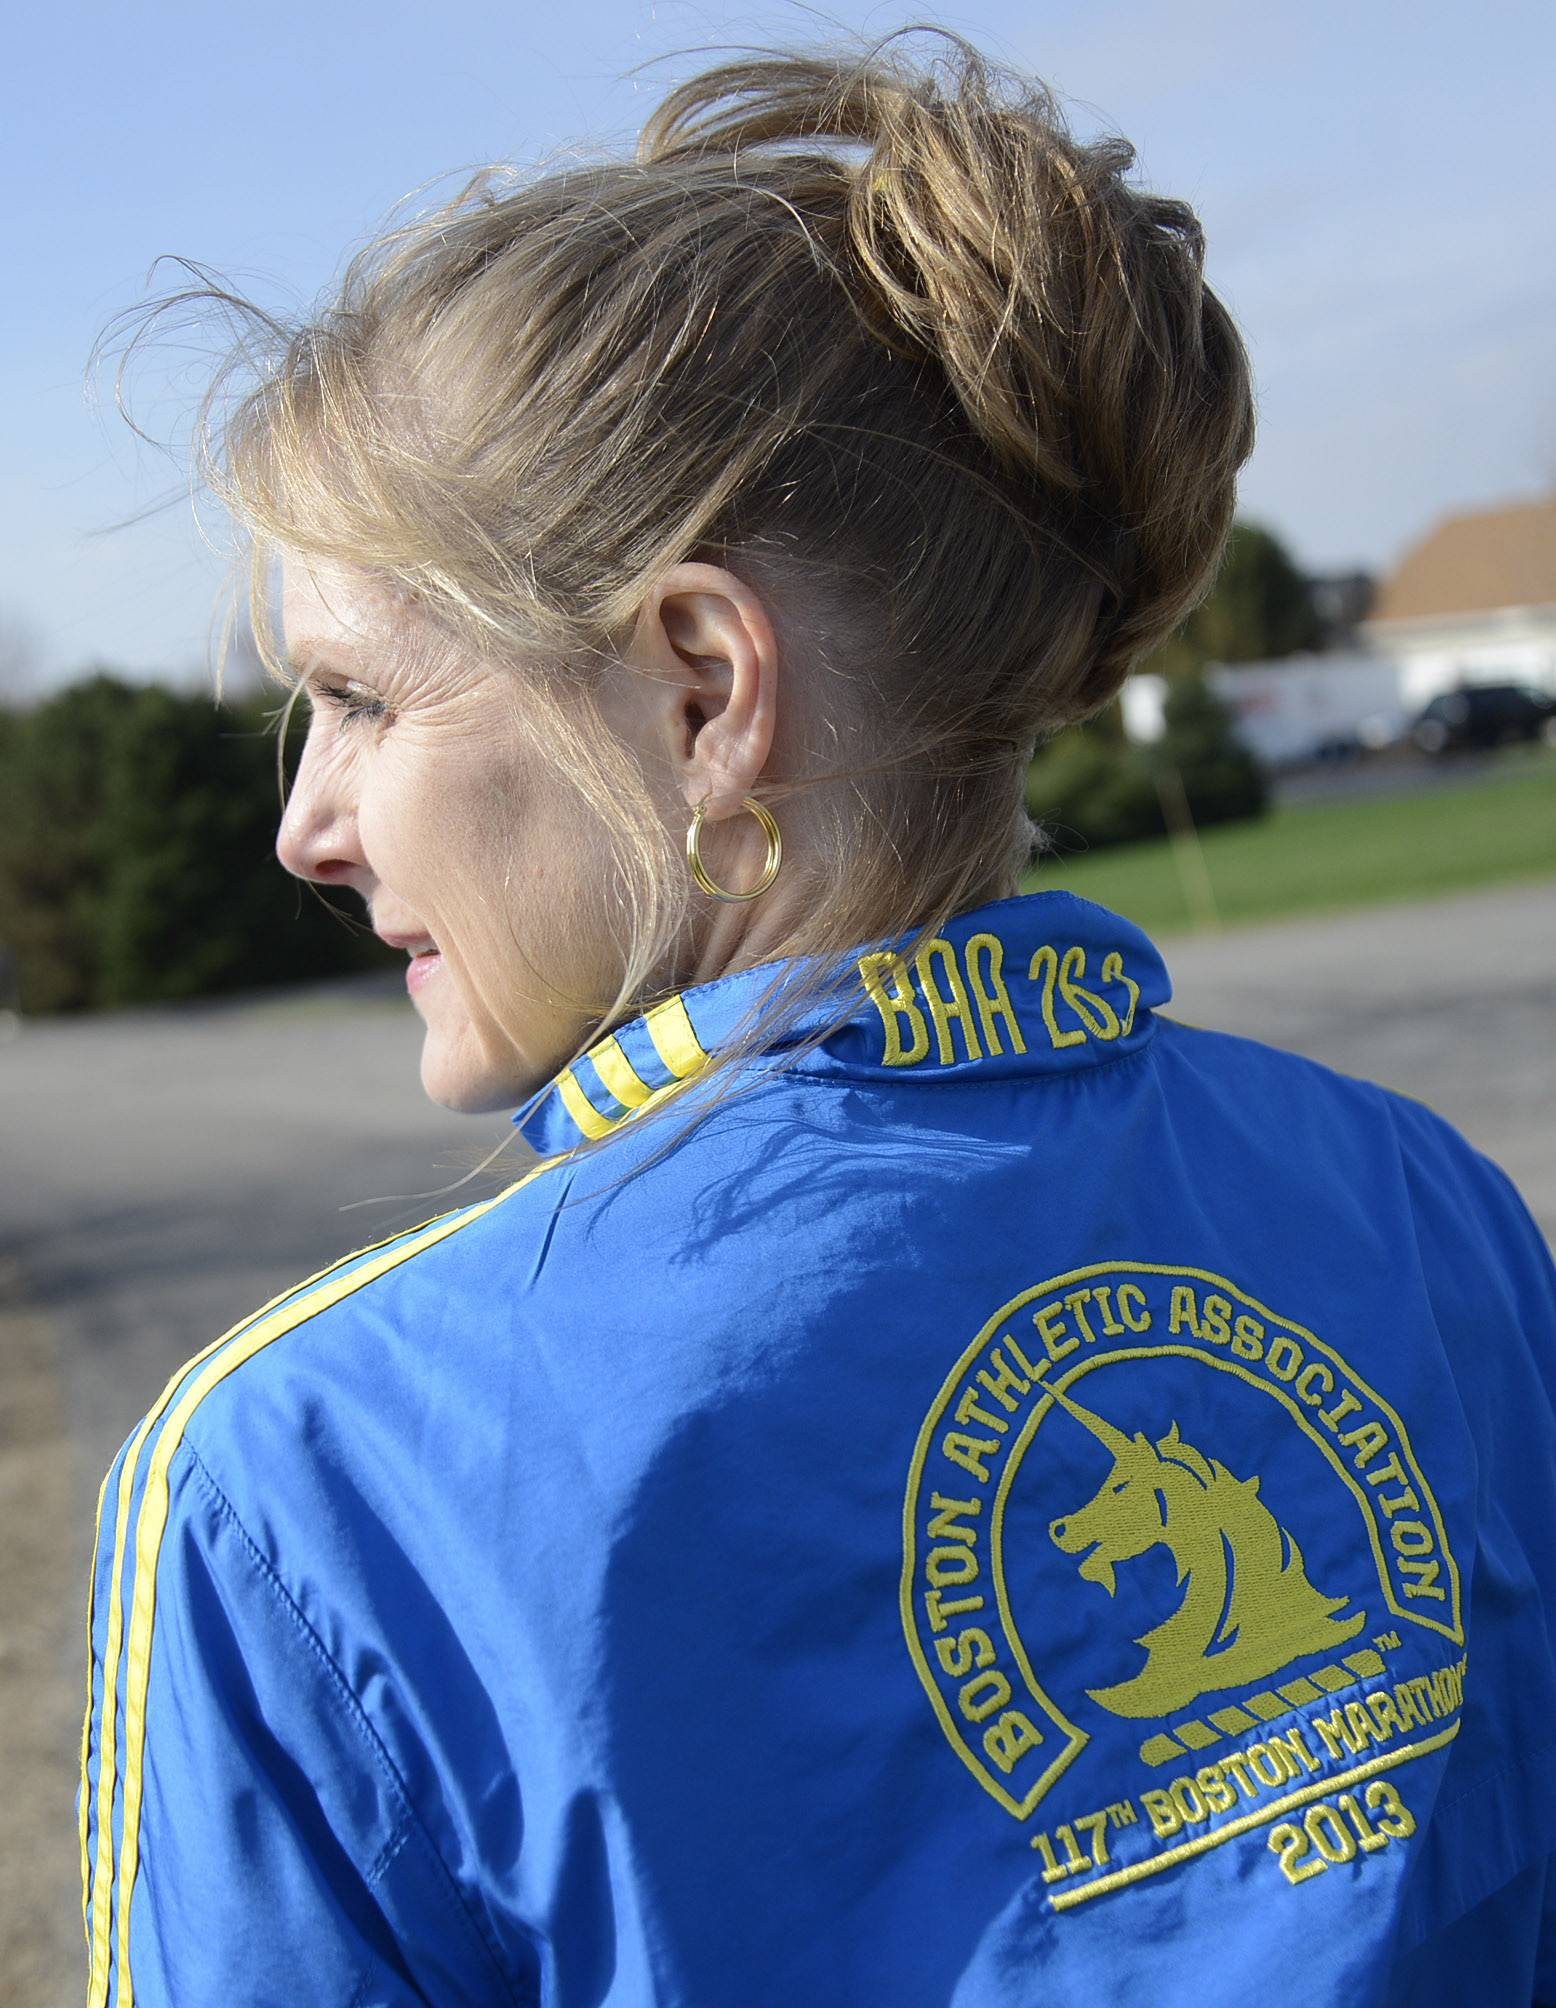 Burlington runner recounts 'chaotic' Boston Marathon experience